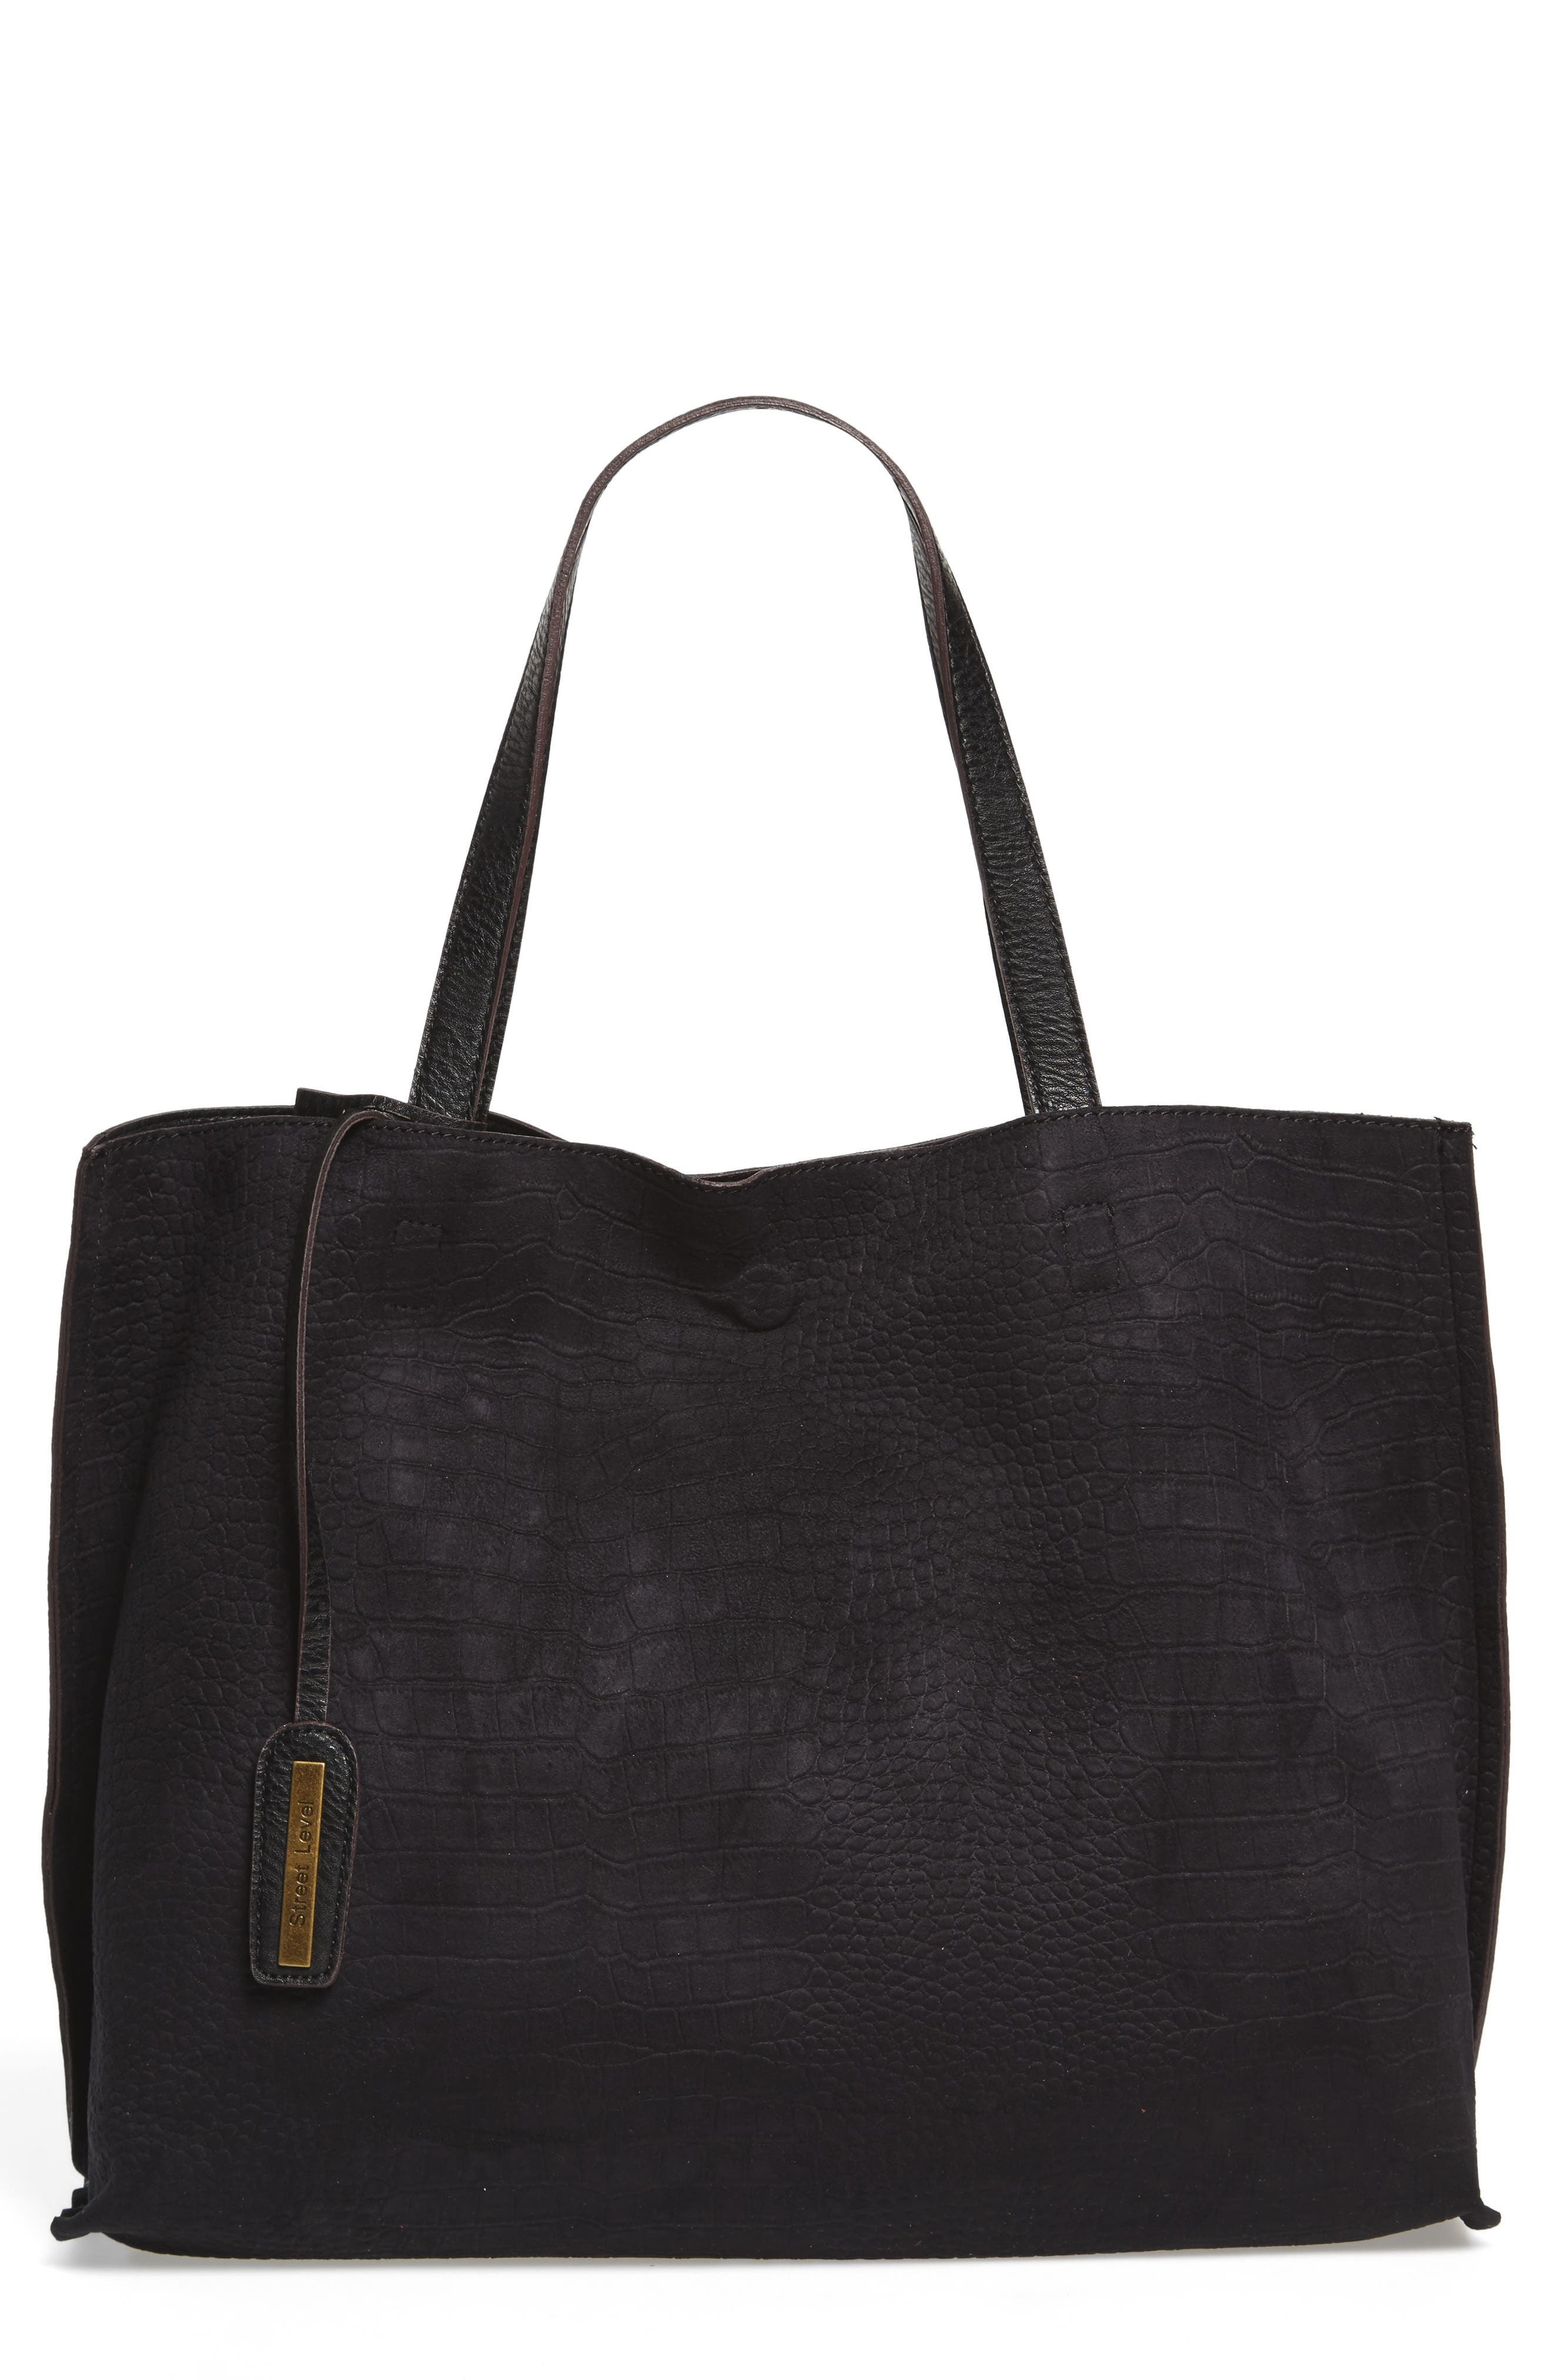 Street Level Reversible Textured Faux Leather Tote